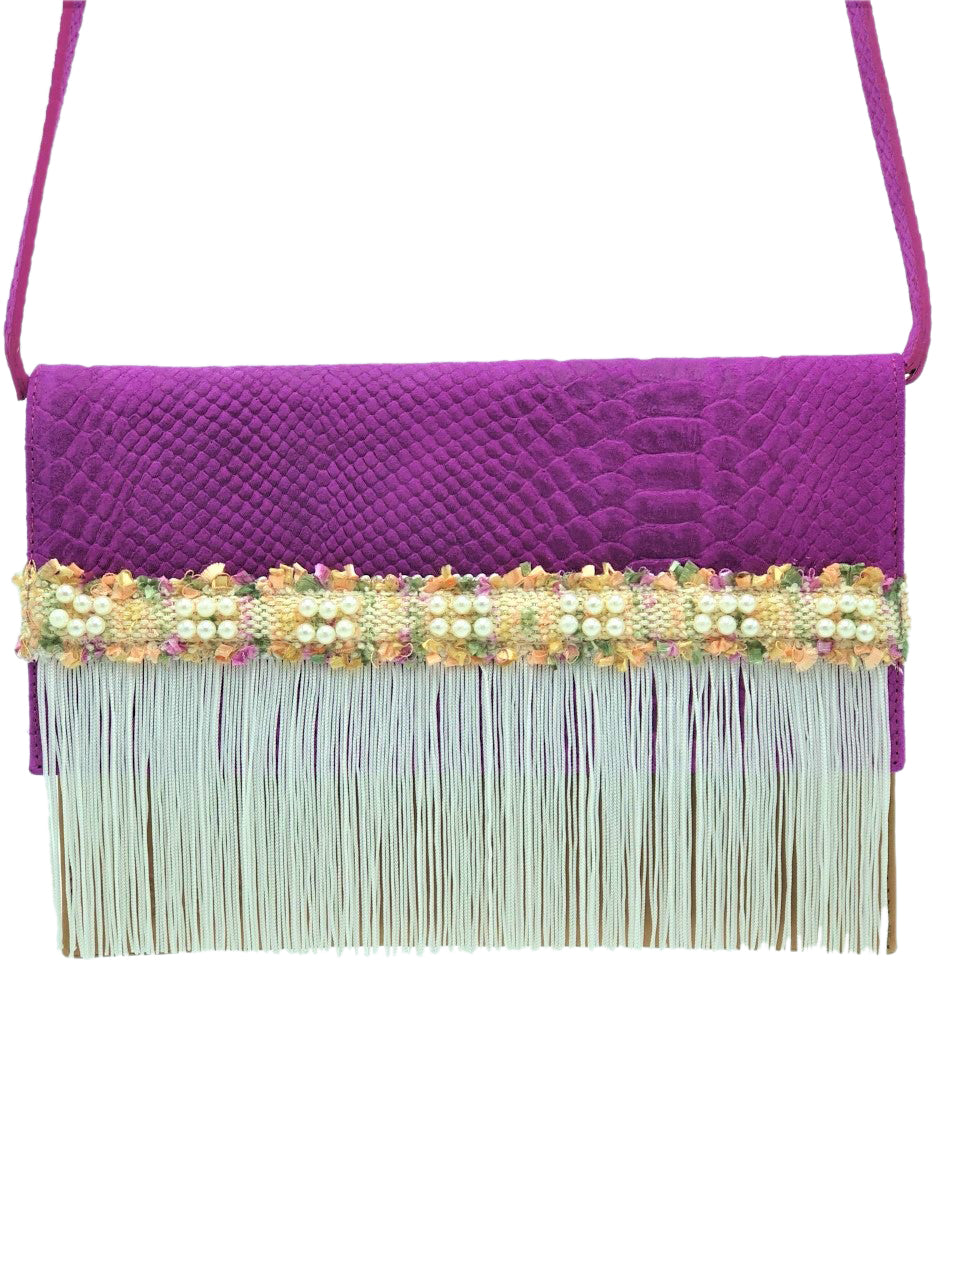 "Embossed purple & camel leather clutch with fringes. ""Light Spirit""."